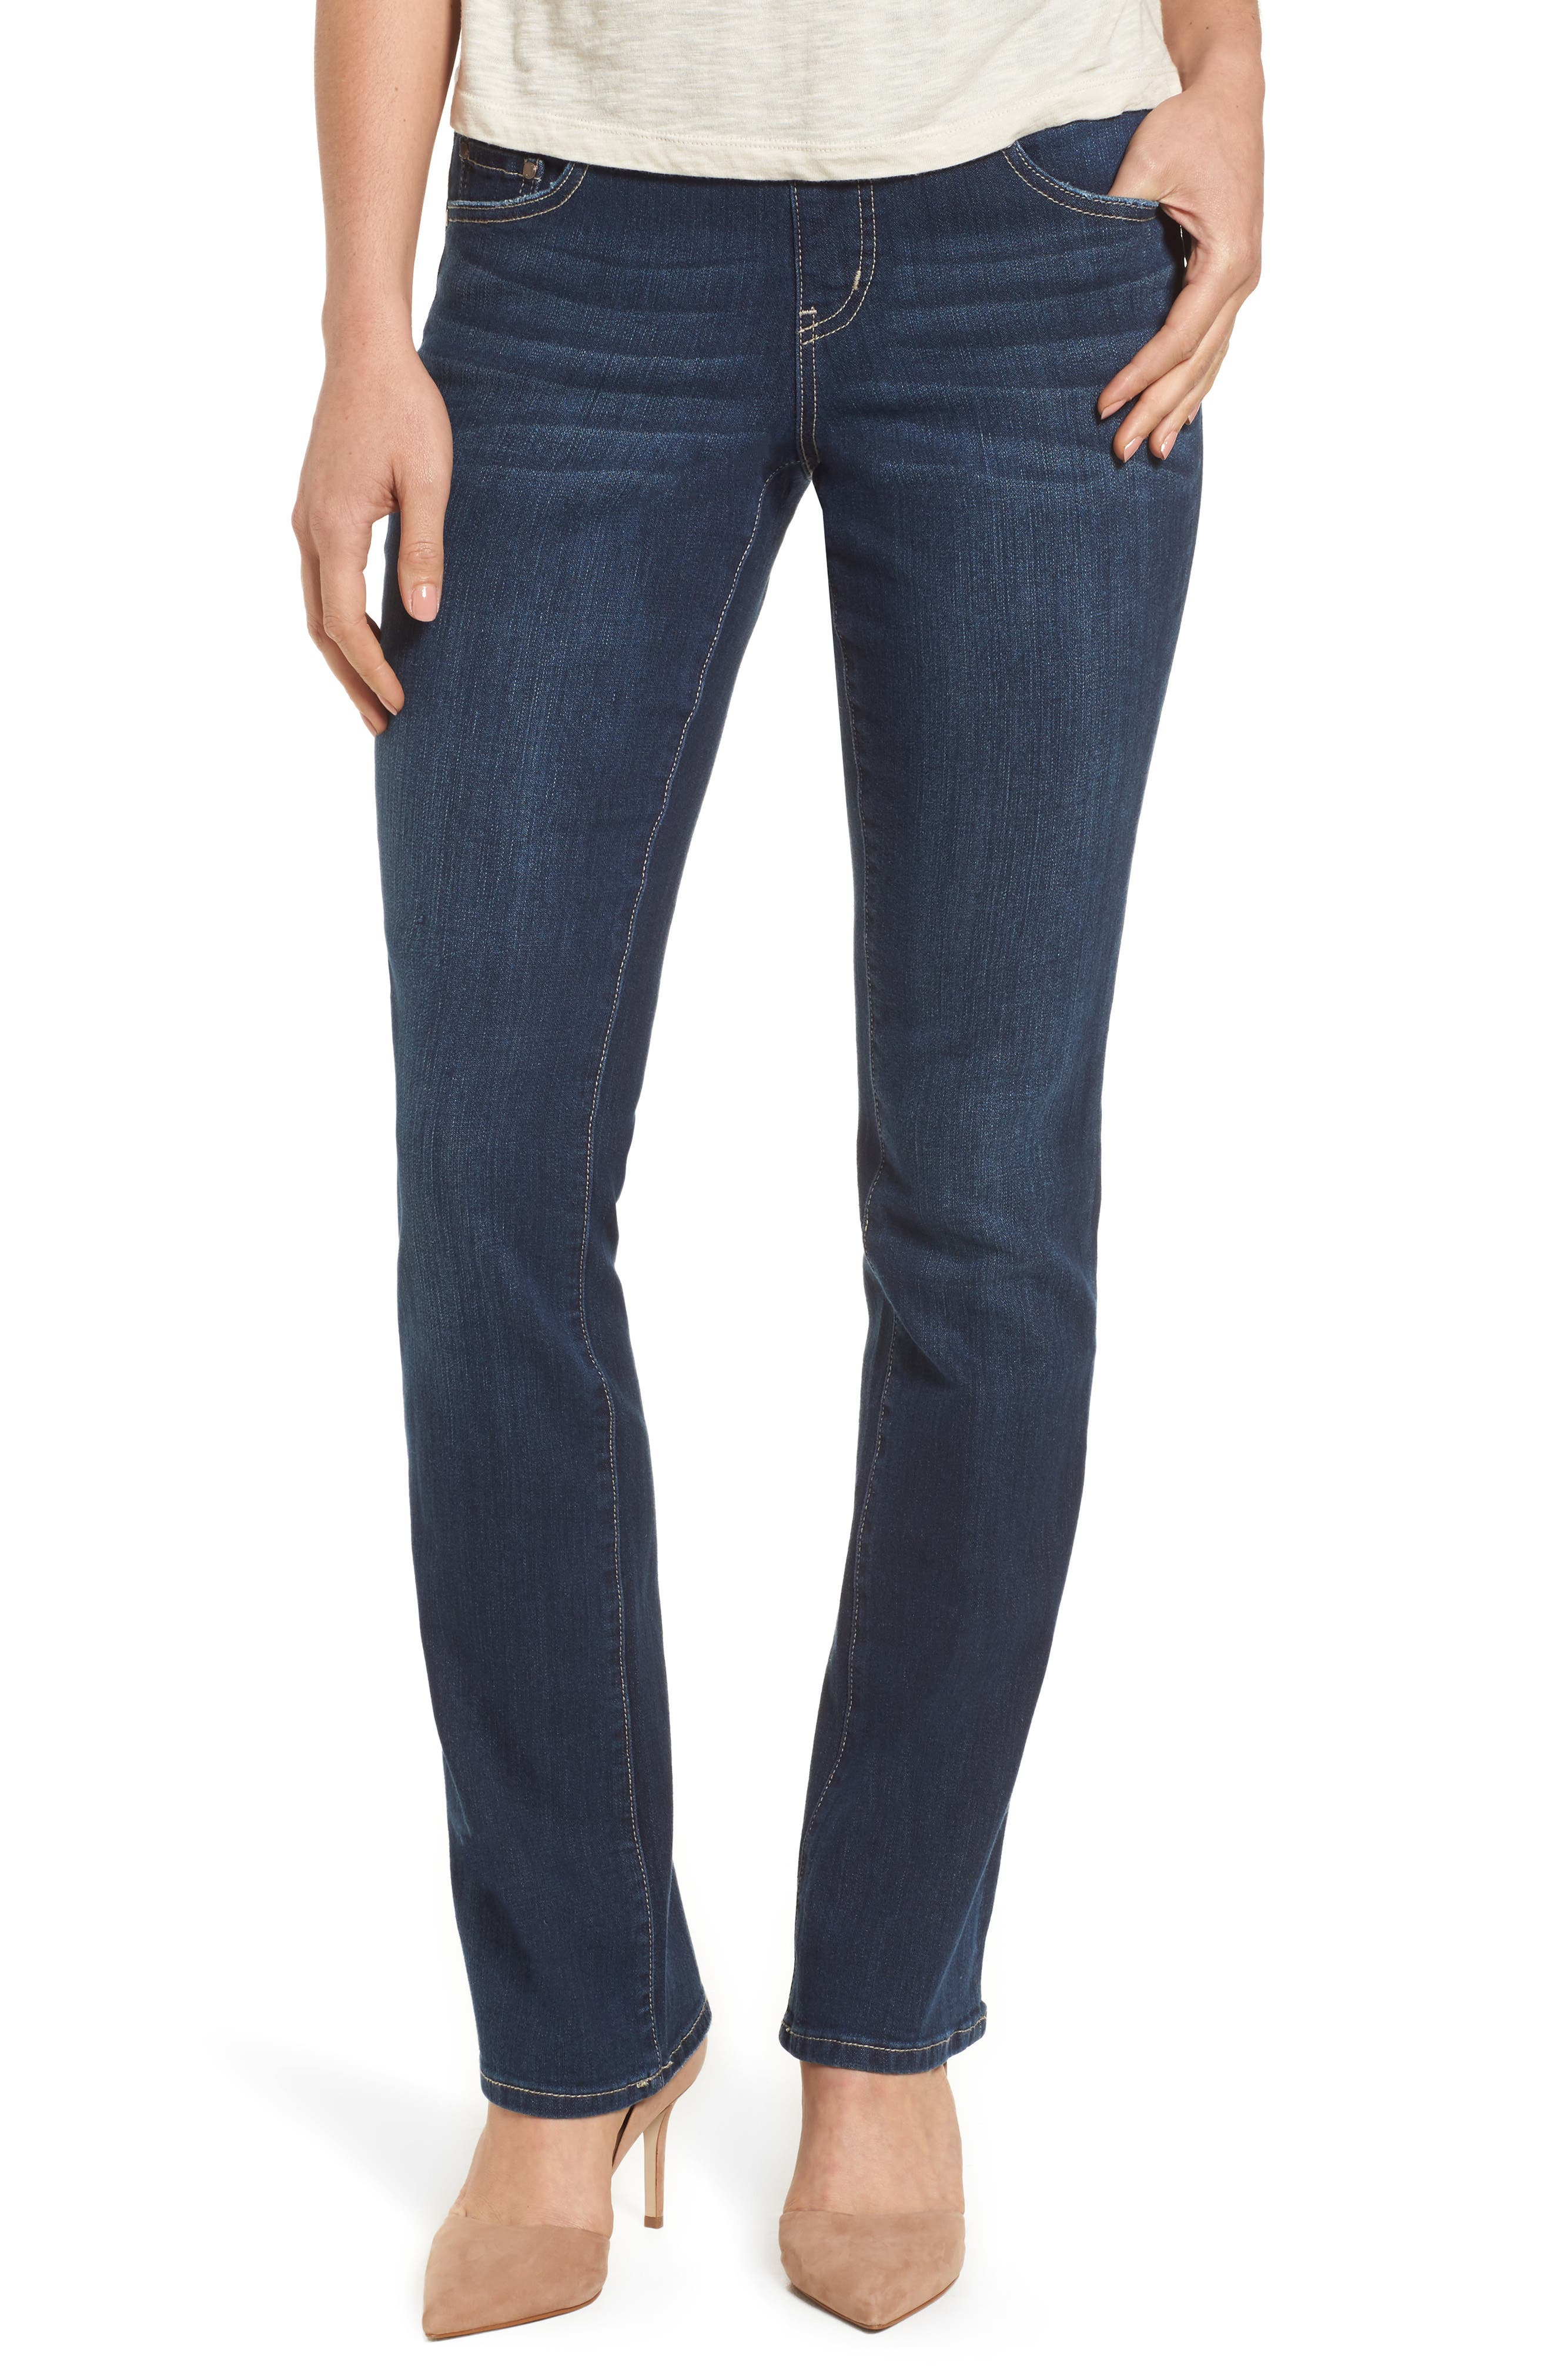 Women's Jag Jeans Paley Stretch Bootcut Jeans